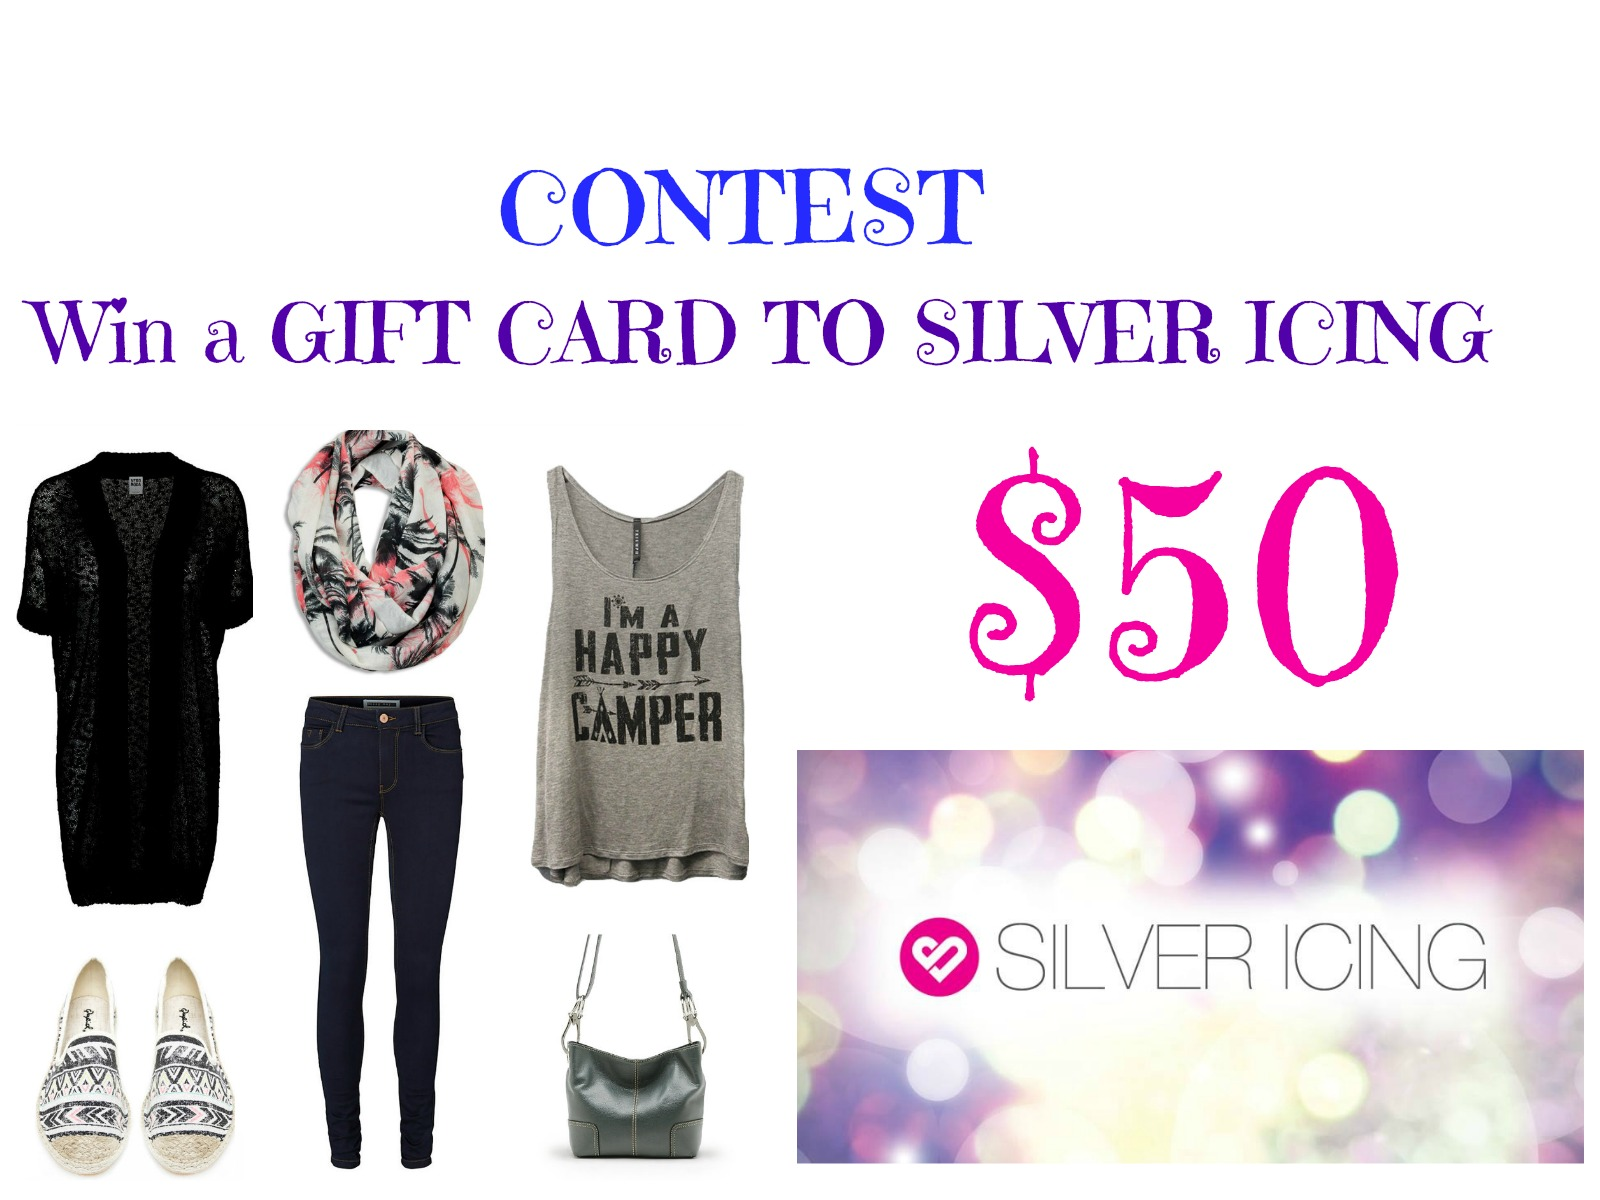 CONTEST: Win A Silver Icing Gift Card